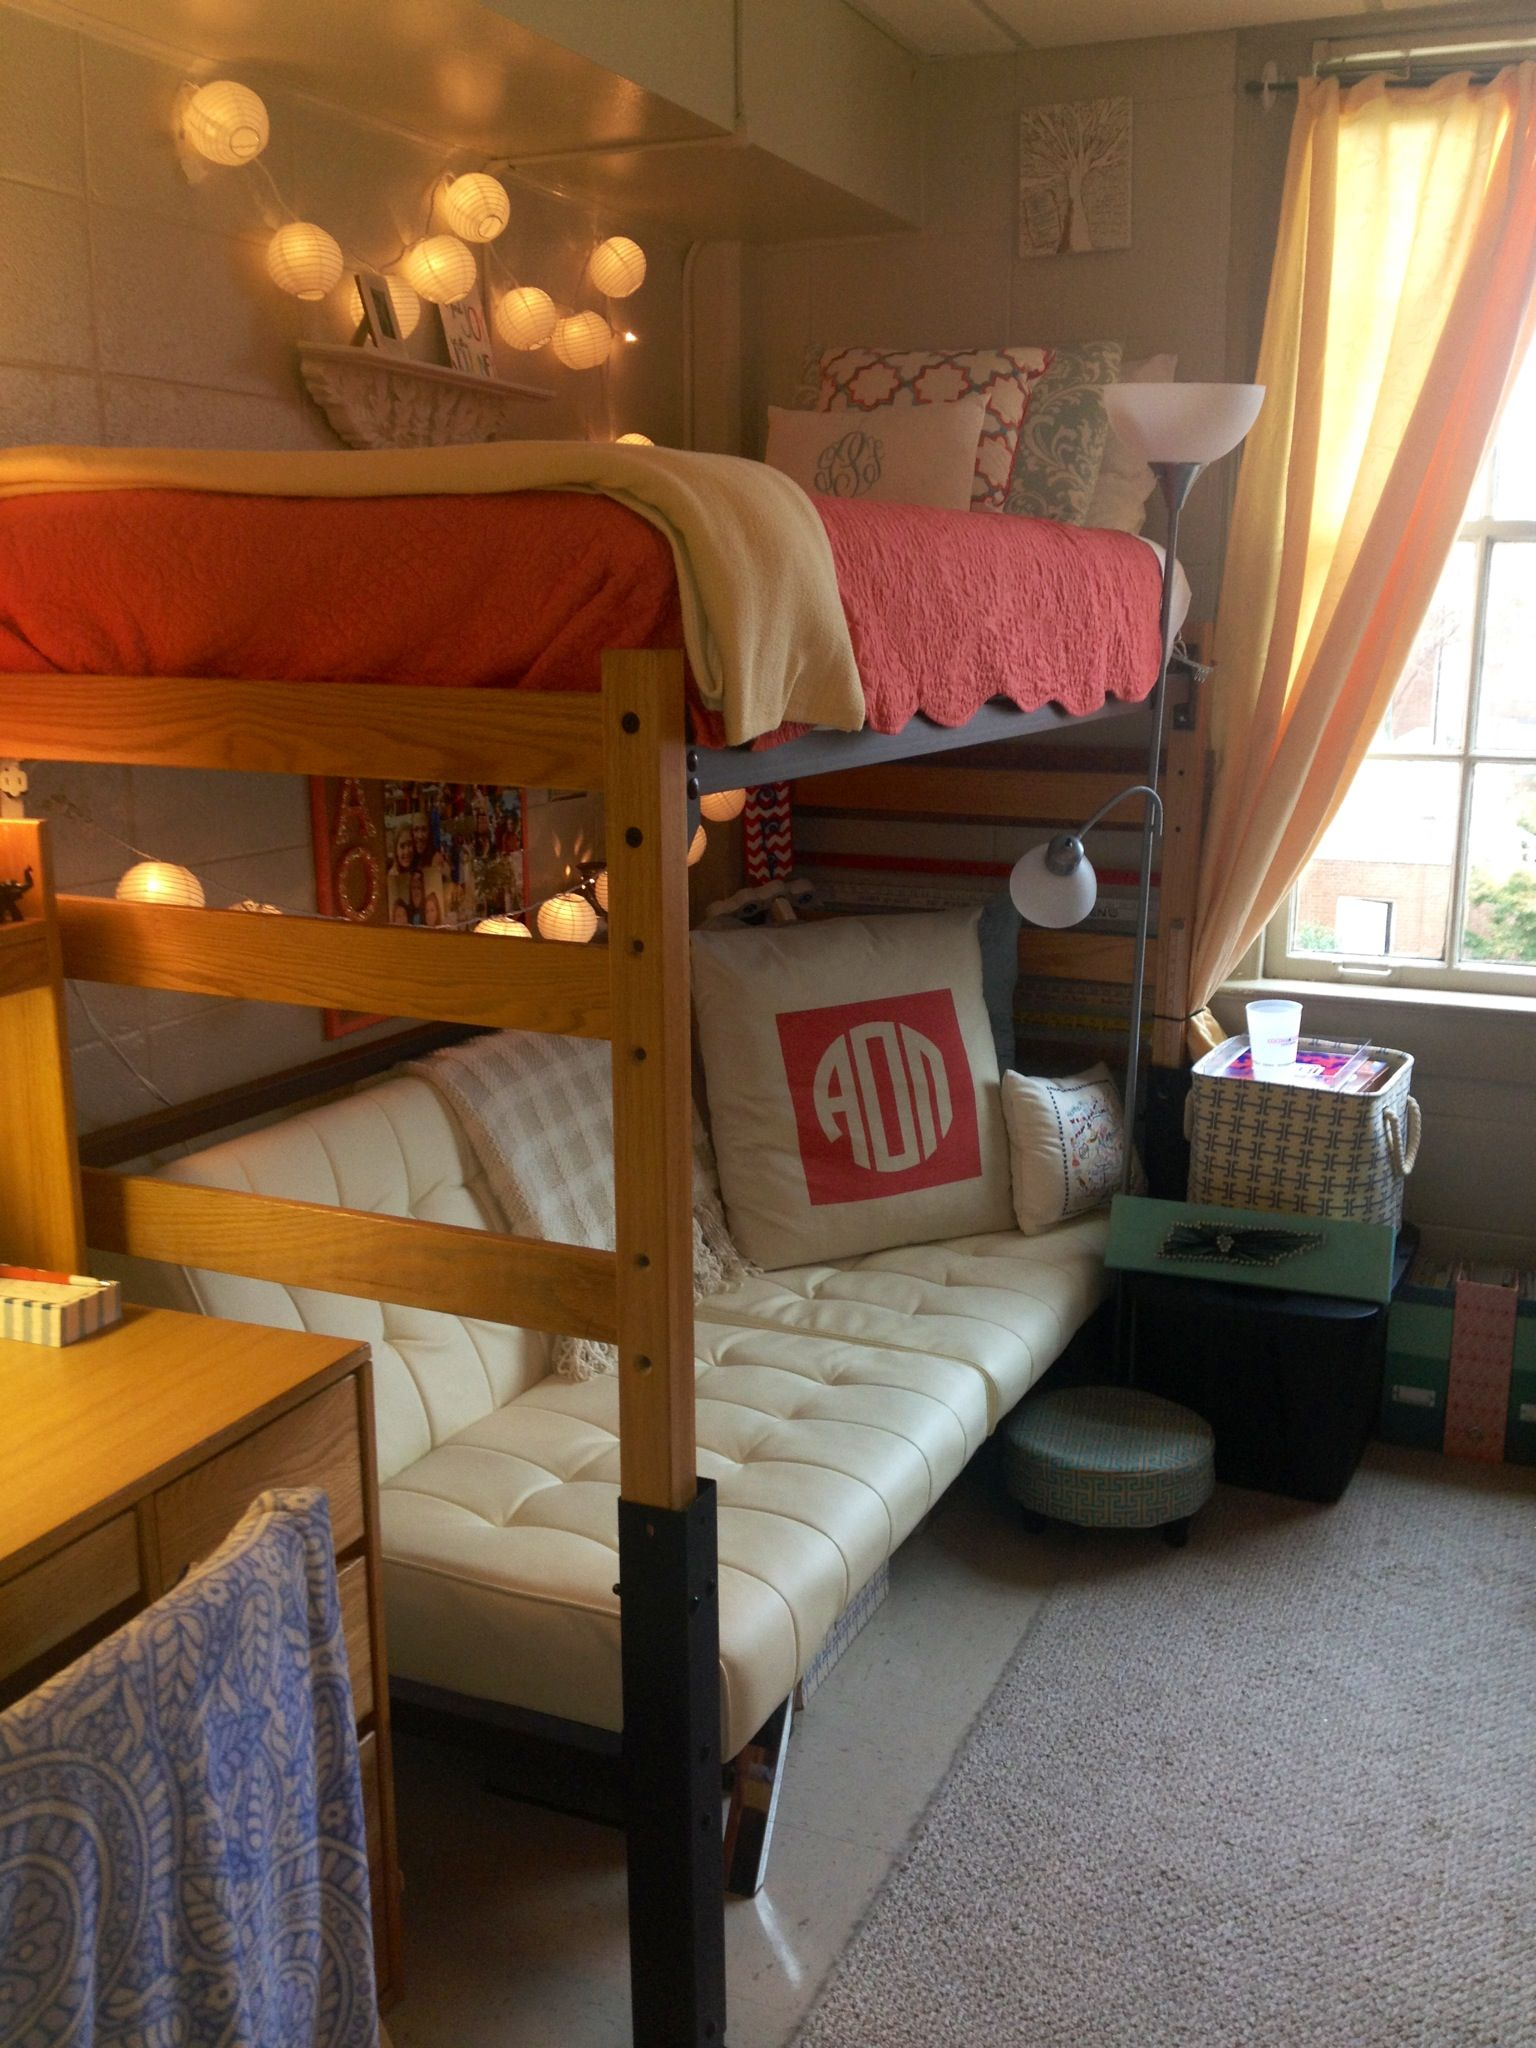 15 Amazing Dorm Room That Will Make You Excited For